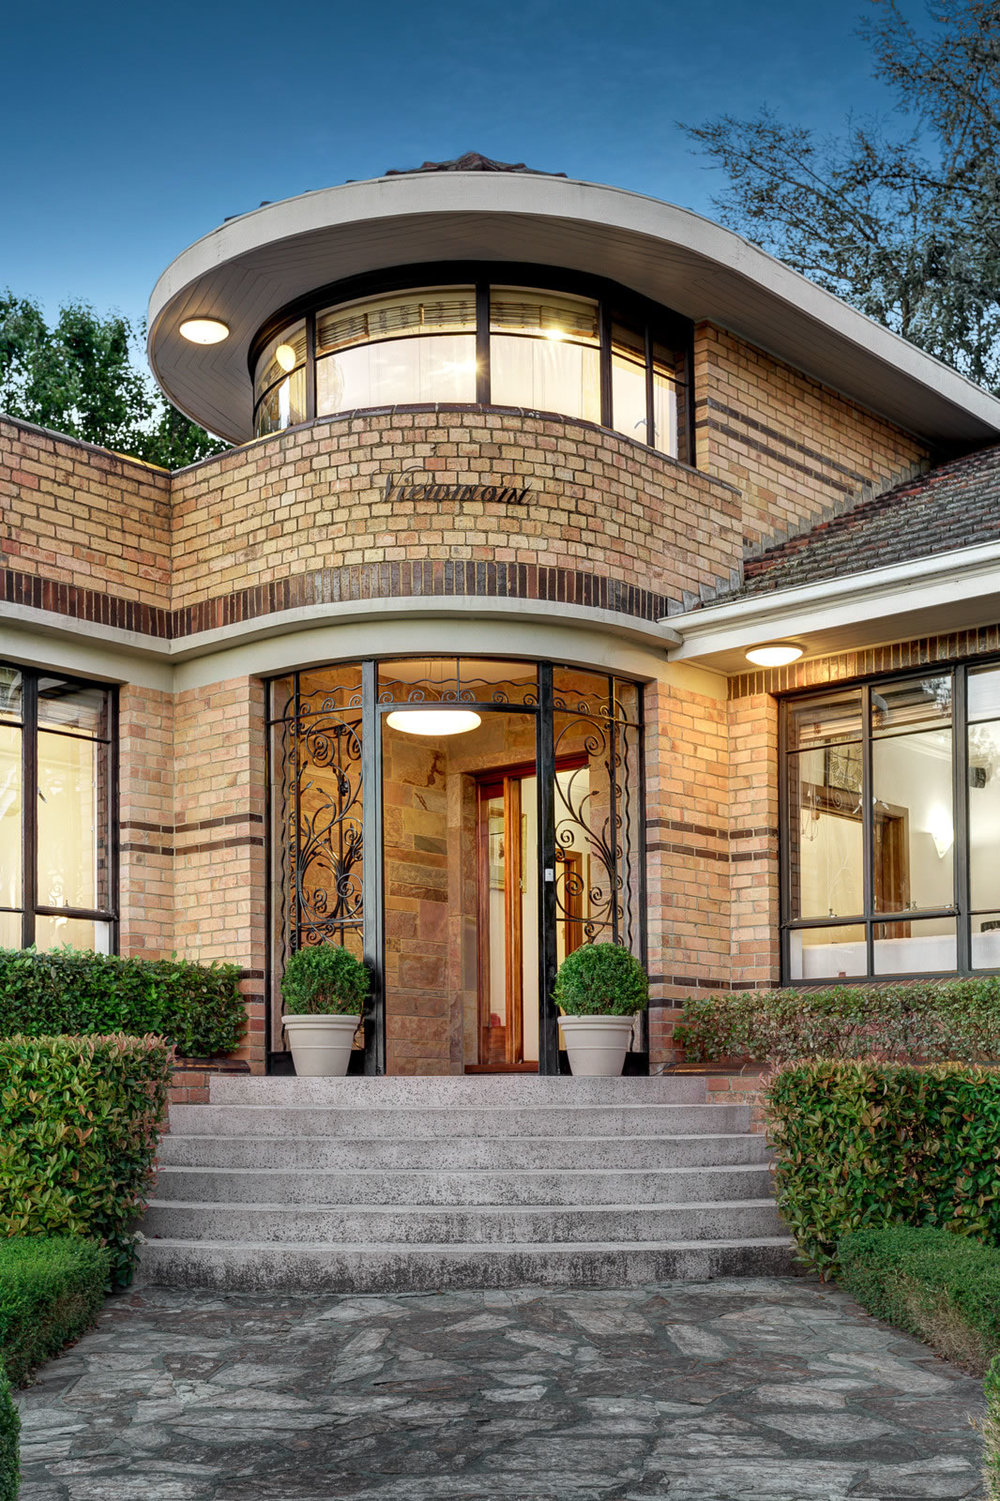 Historical Architectural Style The Art Deco Waterfall House Glamour Drops